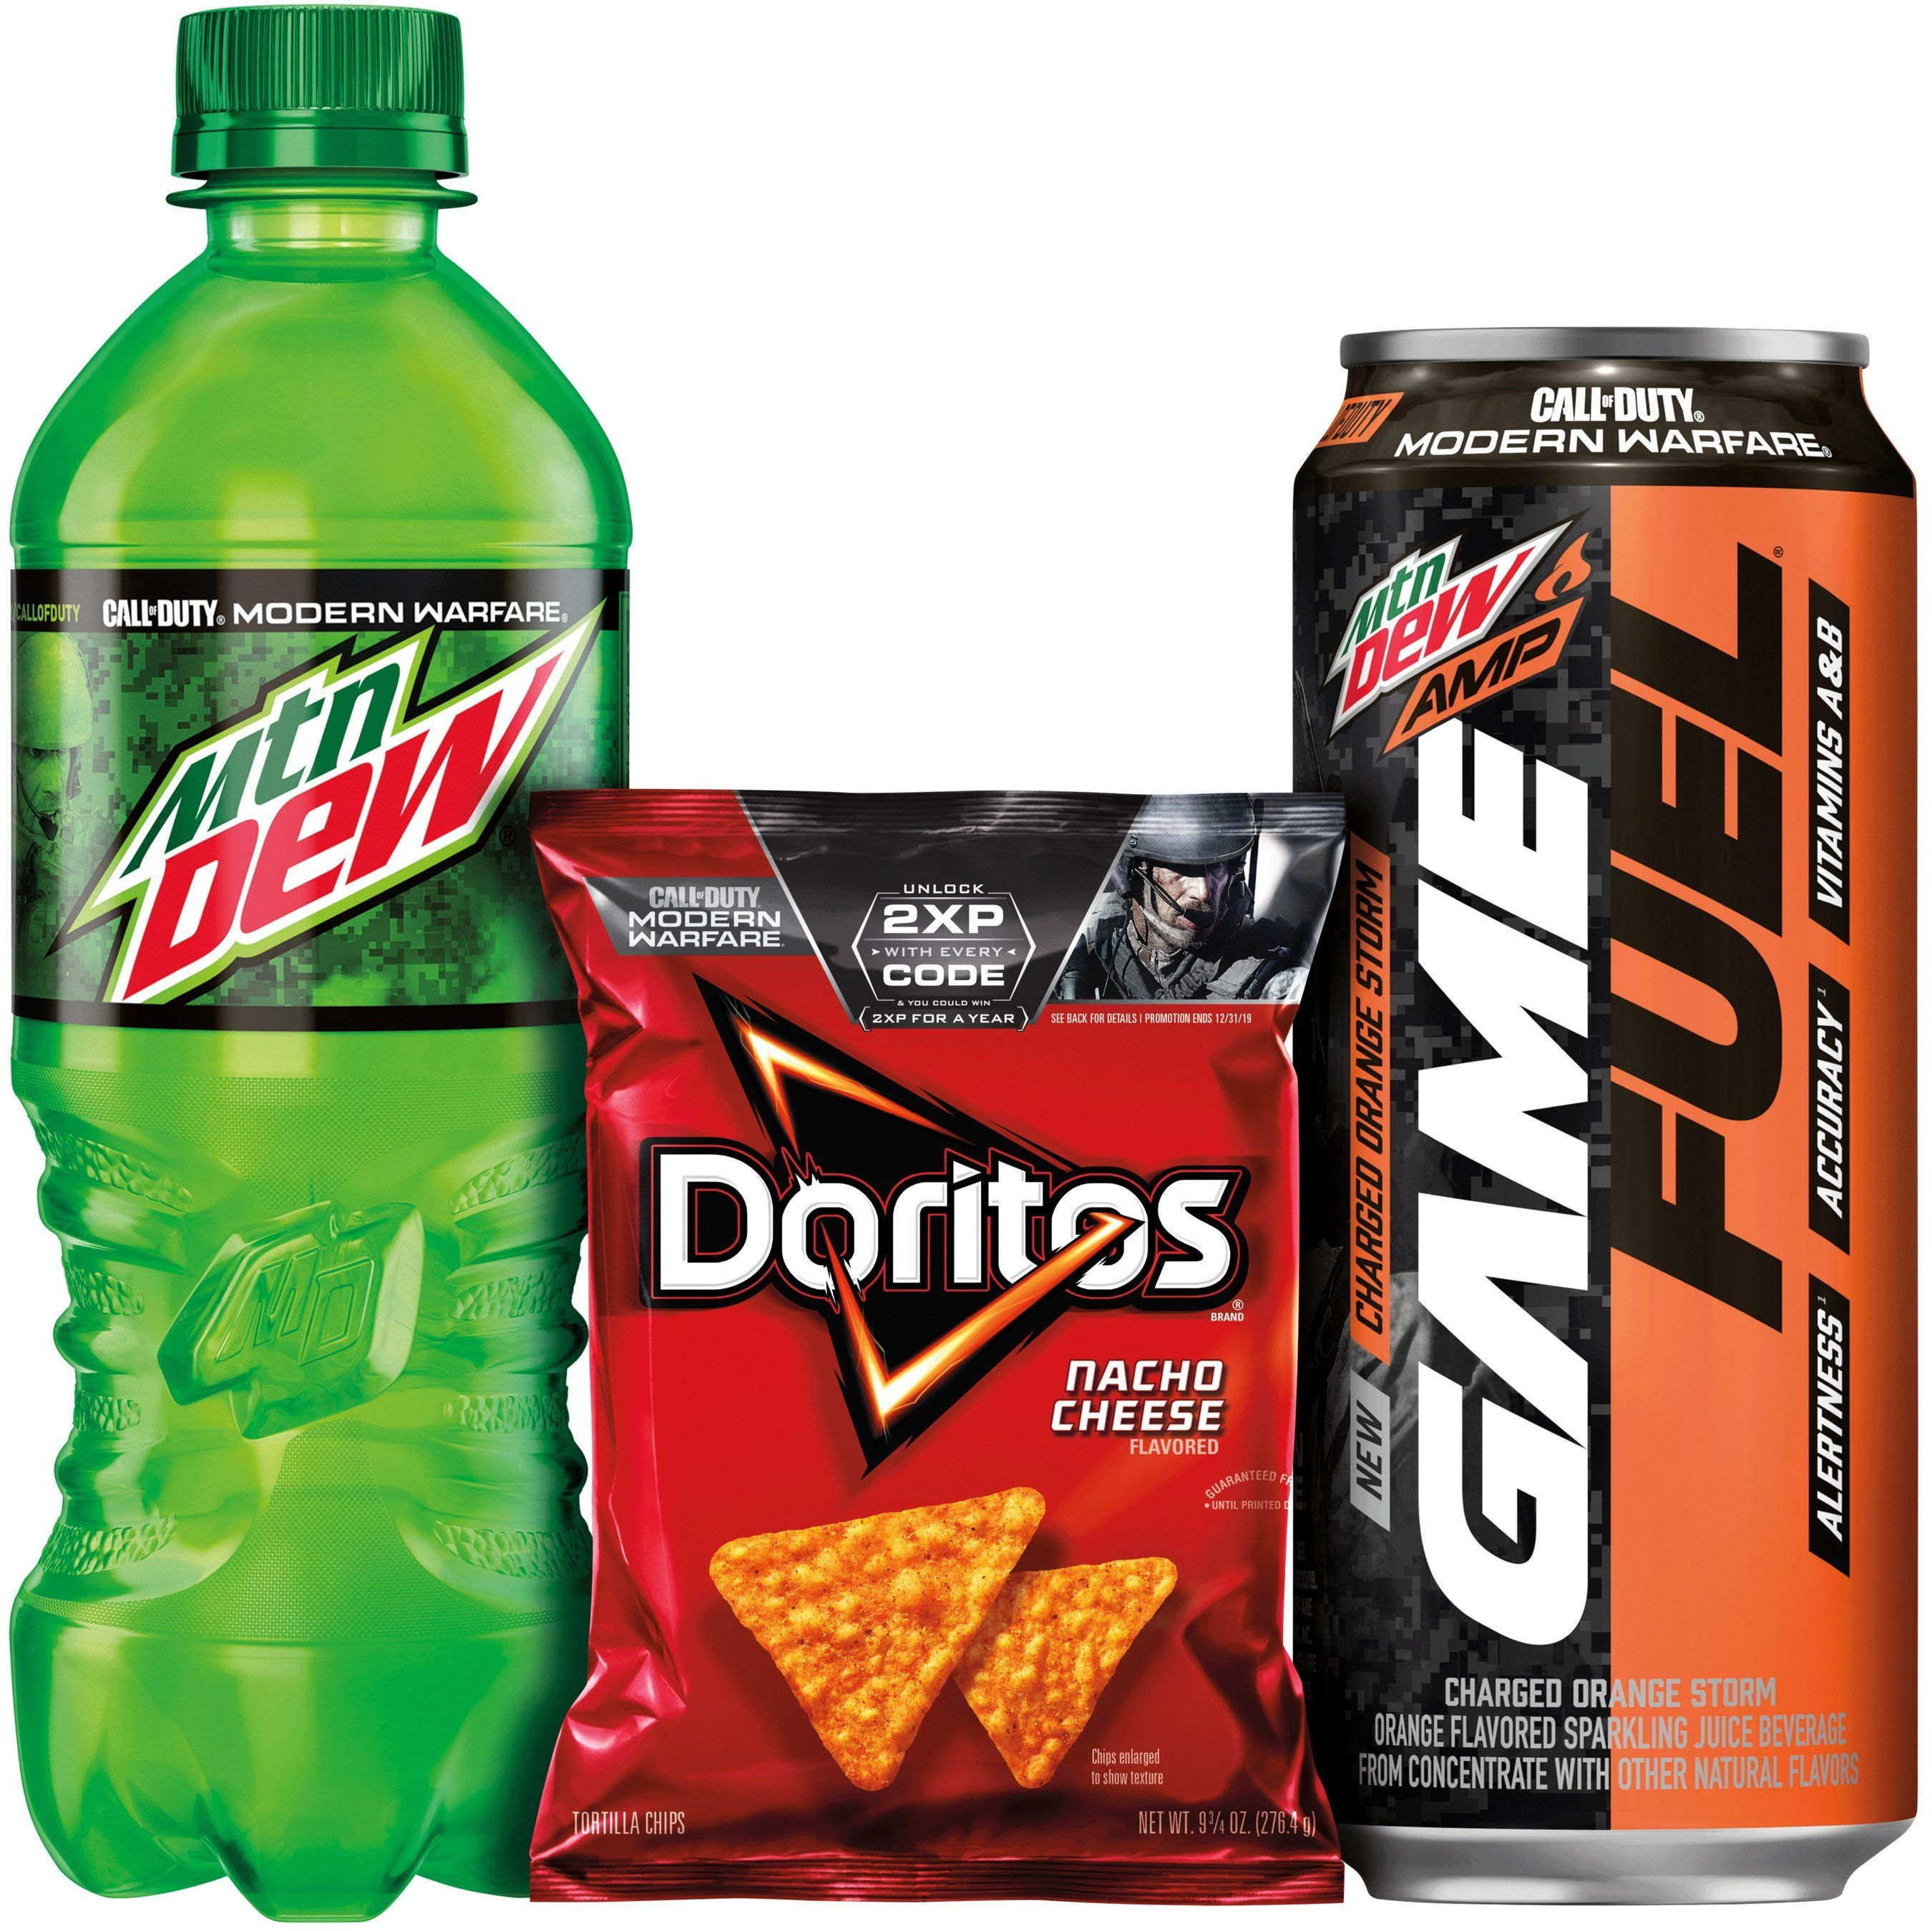 Mountain Dew And Doritos Partner With Activision For Call Of Duty